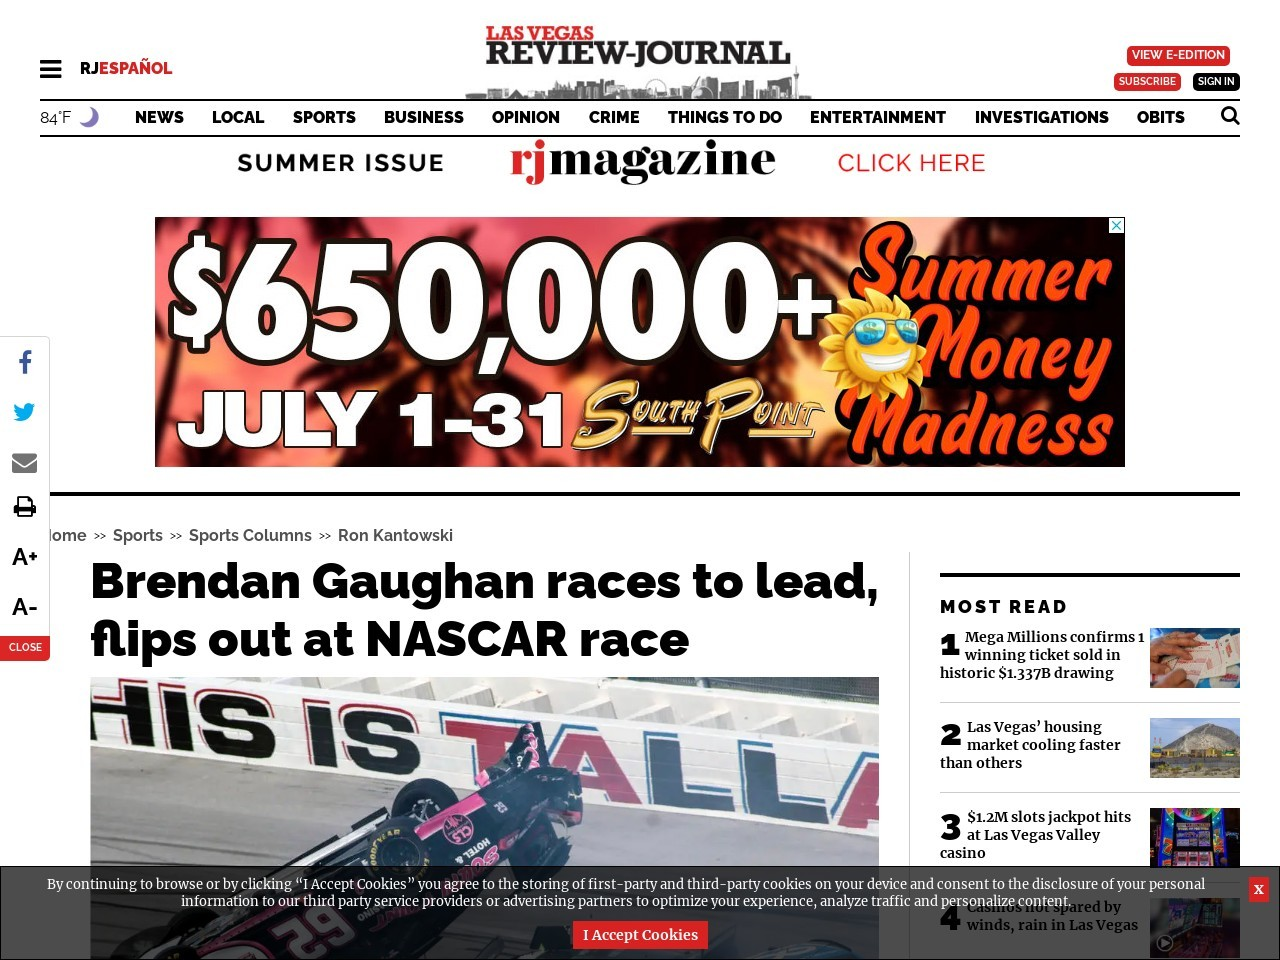 Brendan Gaughan races to lead, flips out at NASCAR race